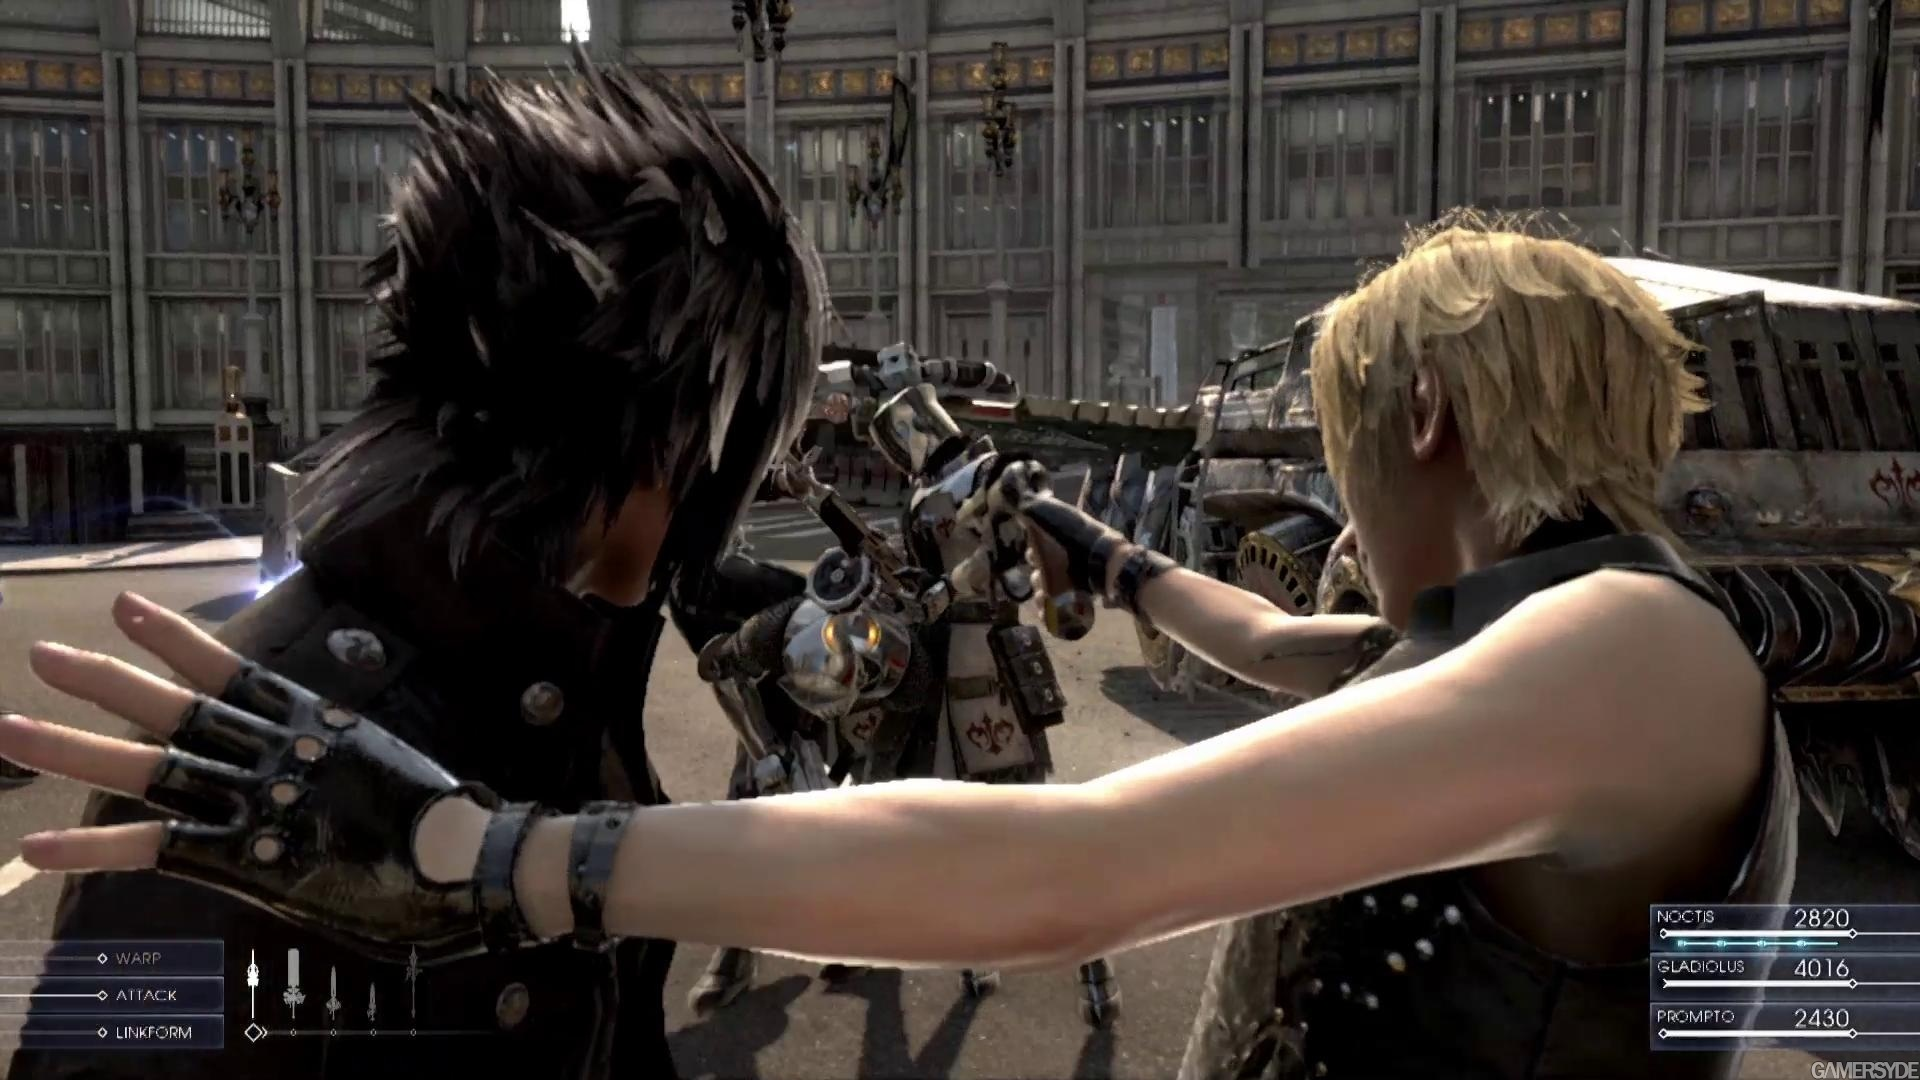 Final Fantasy Xv Wallpapers: Final Fantasy XV Wallpapers, Pictures, Images